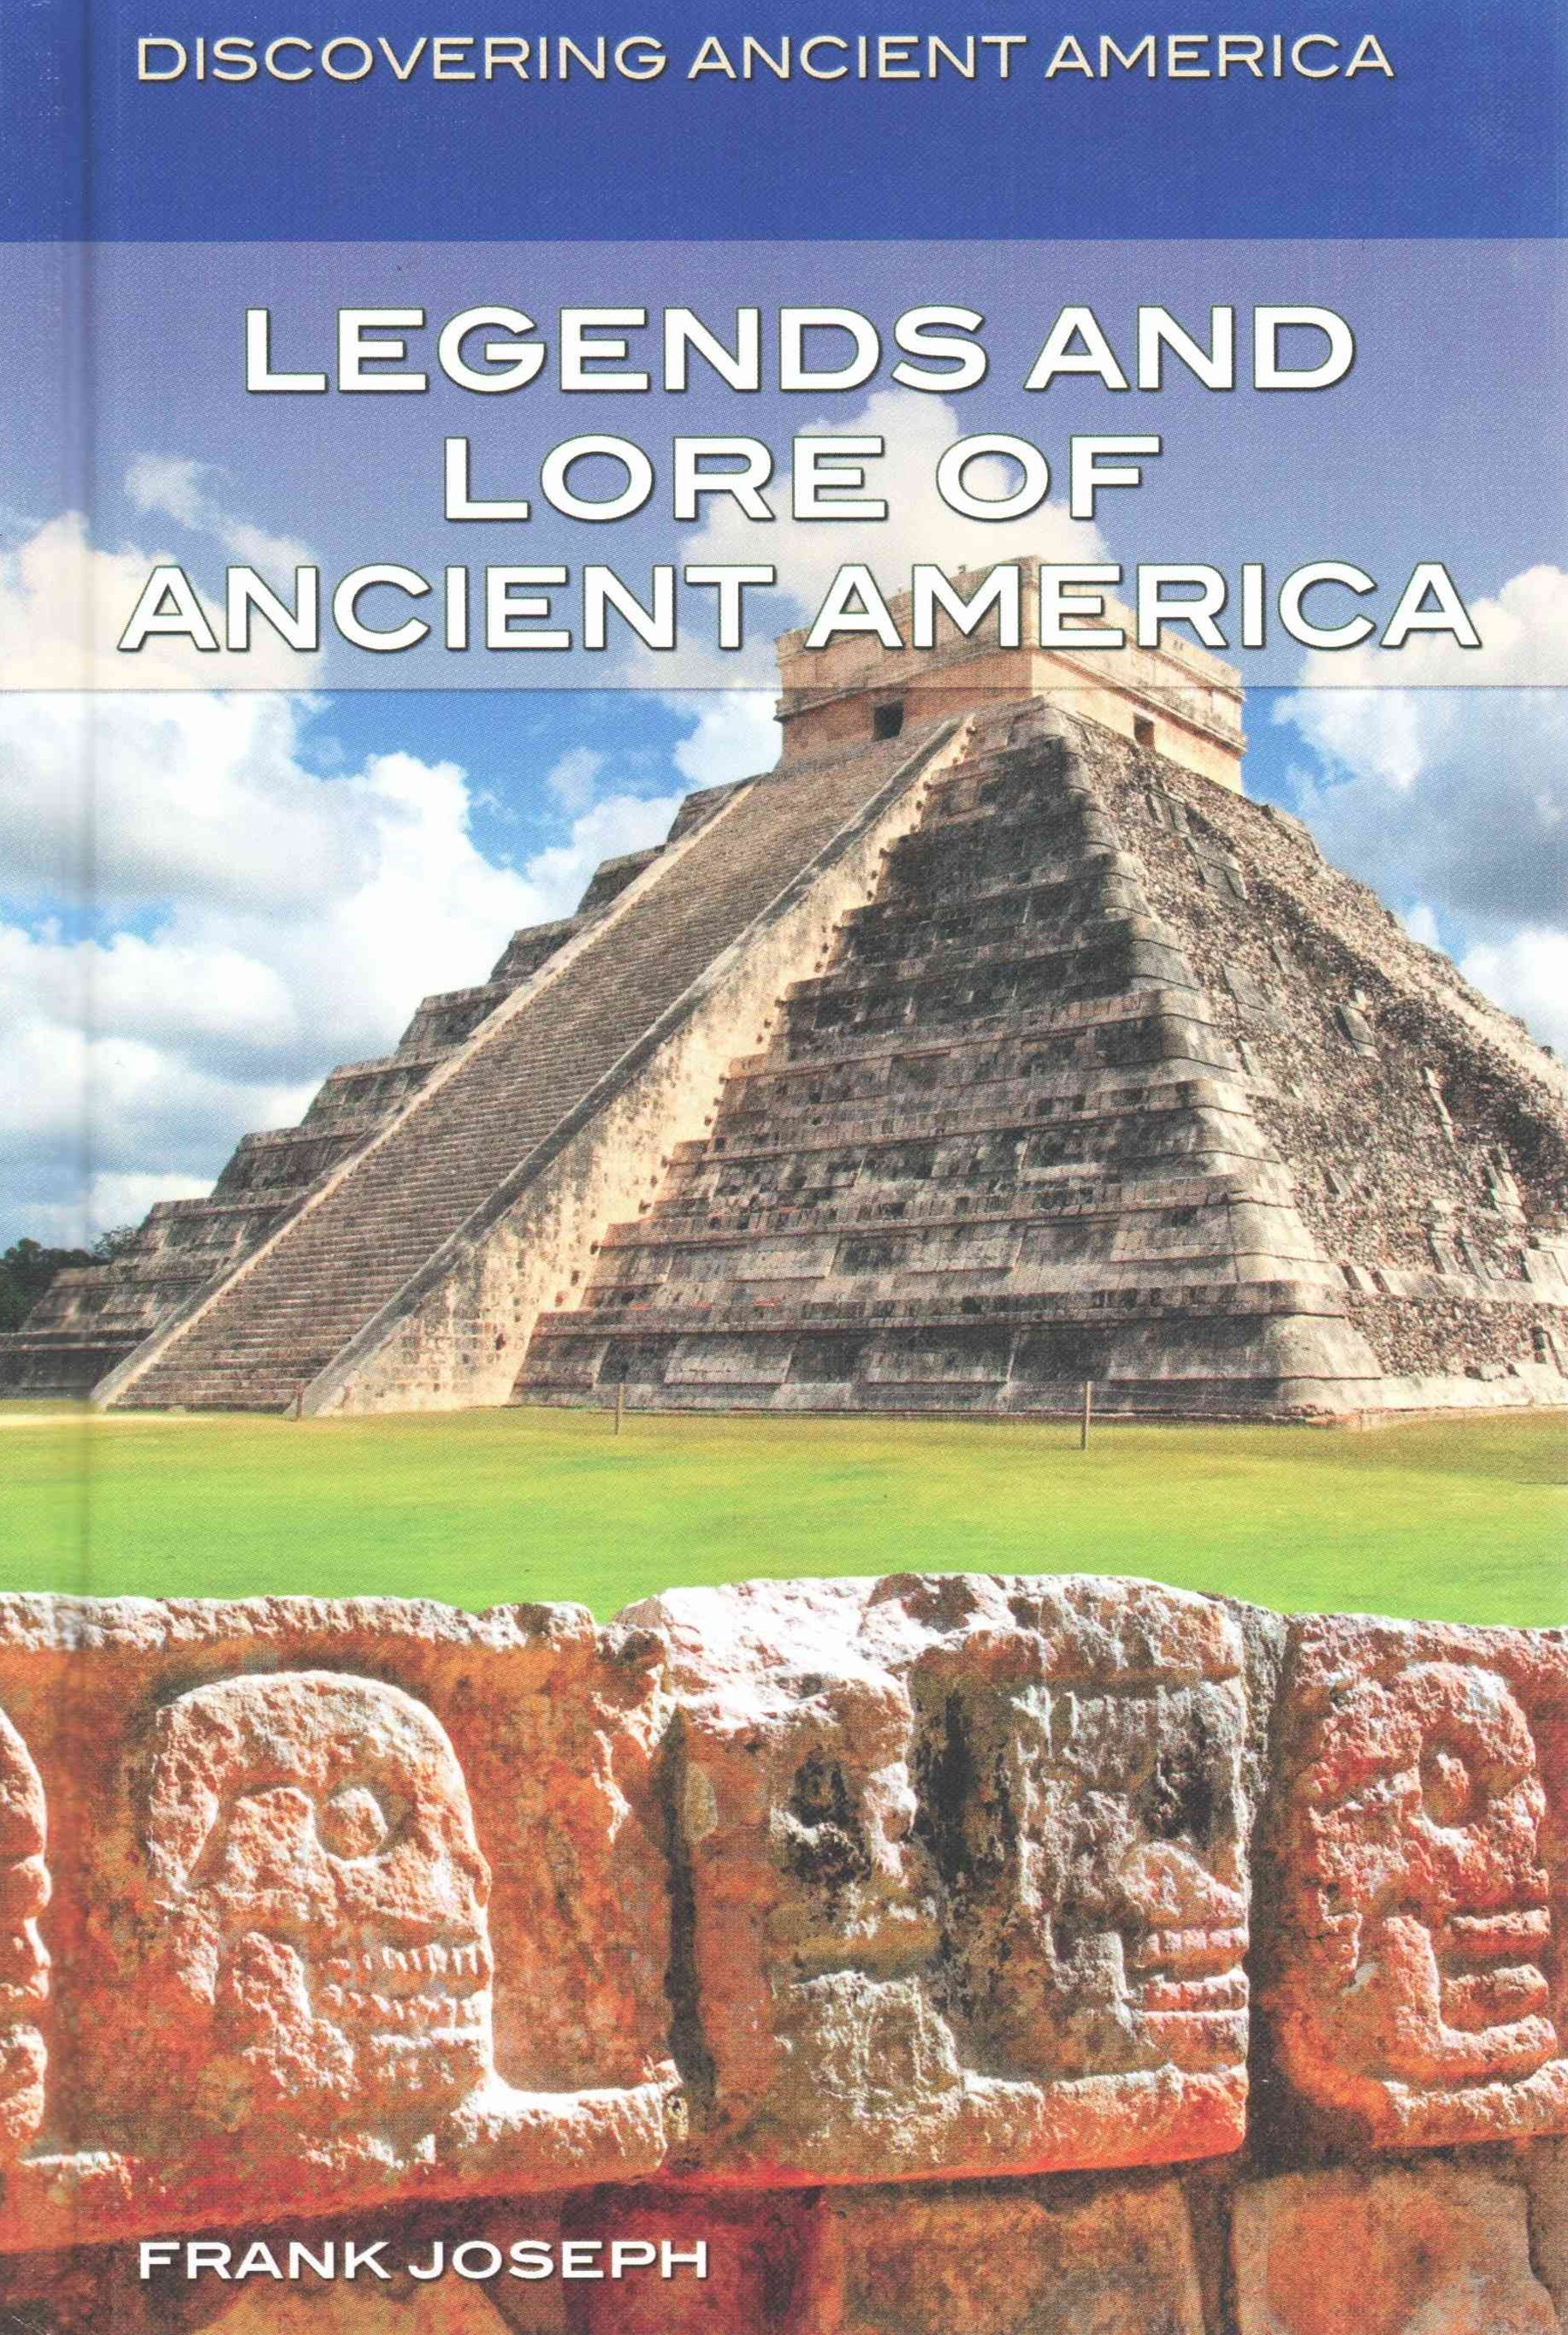 Legends and Lore of Ancient America